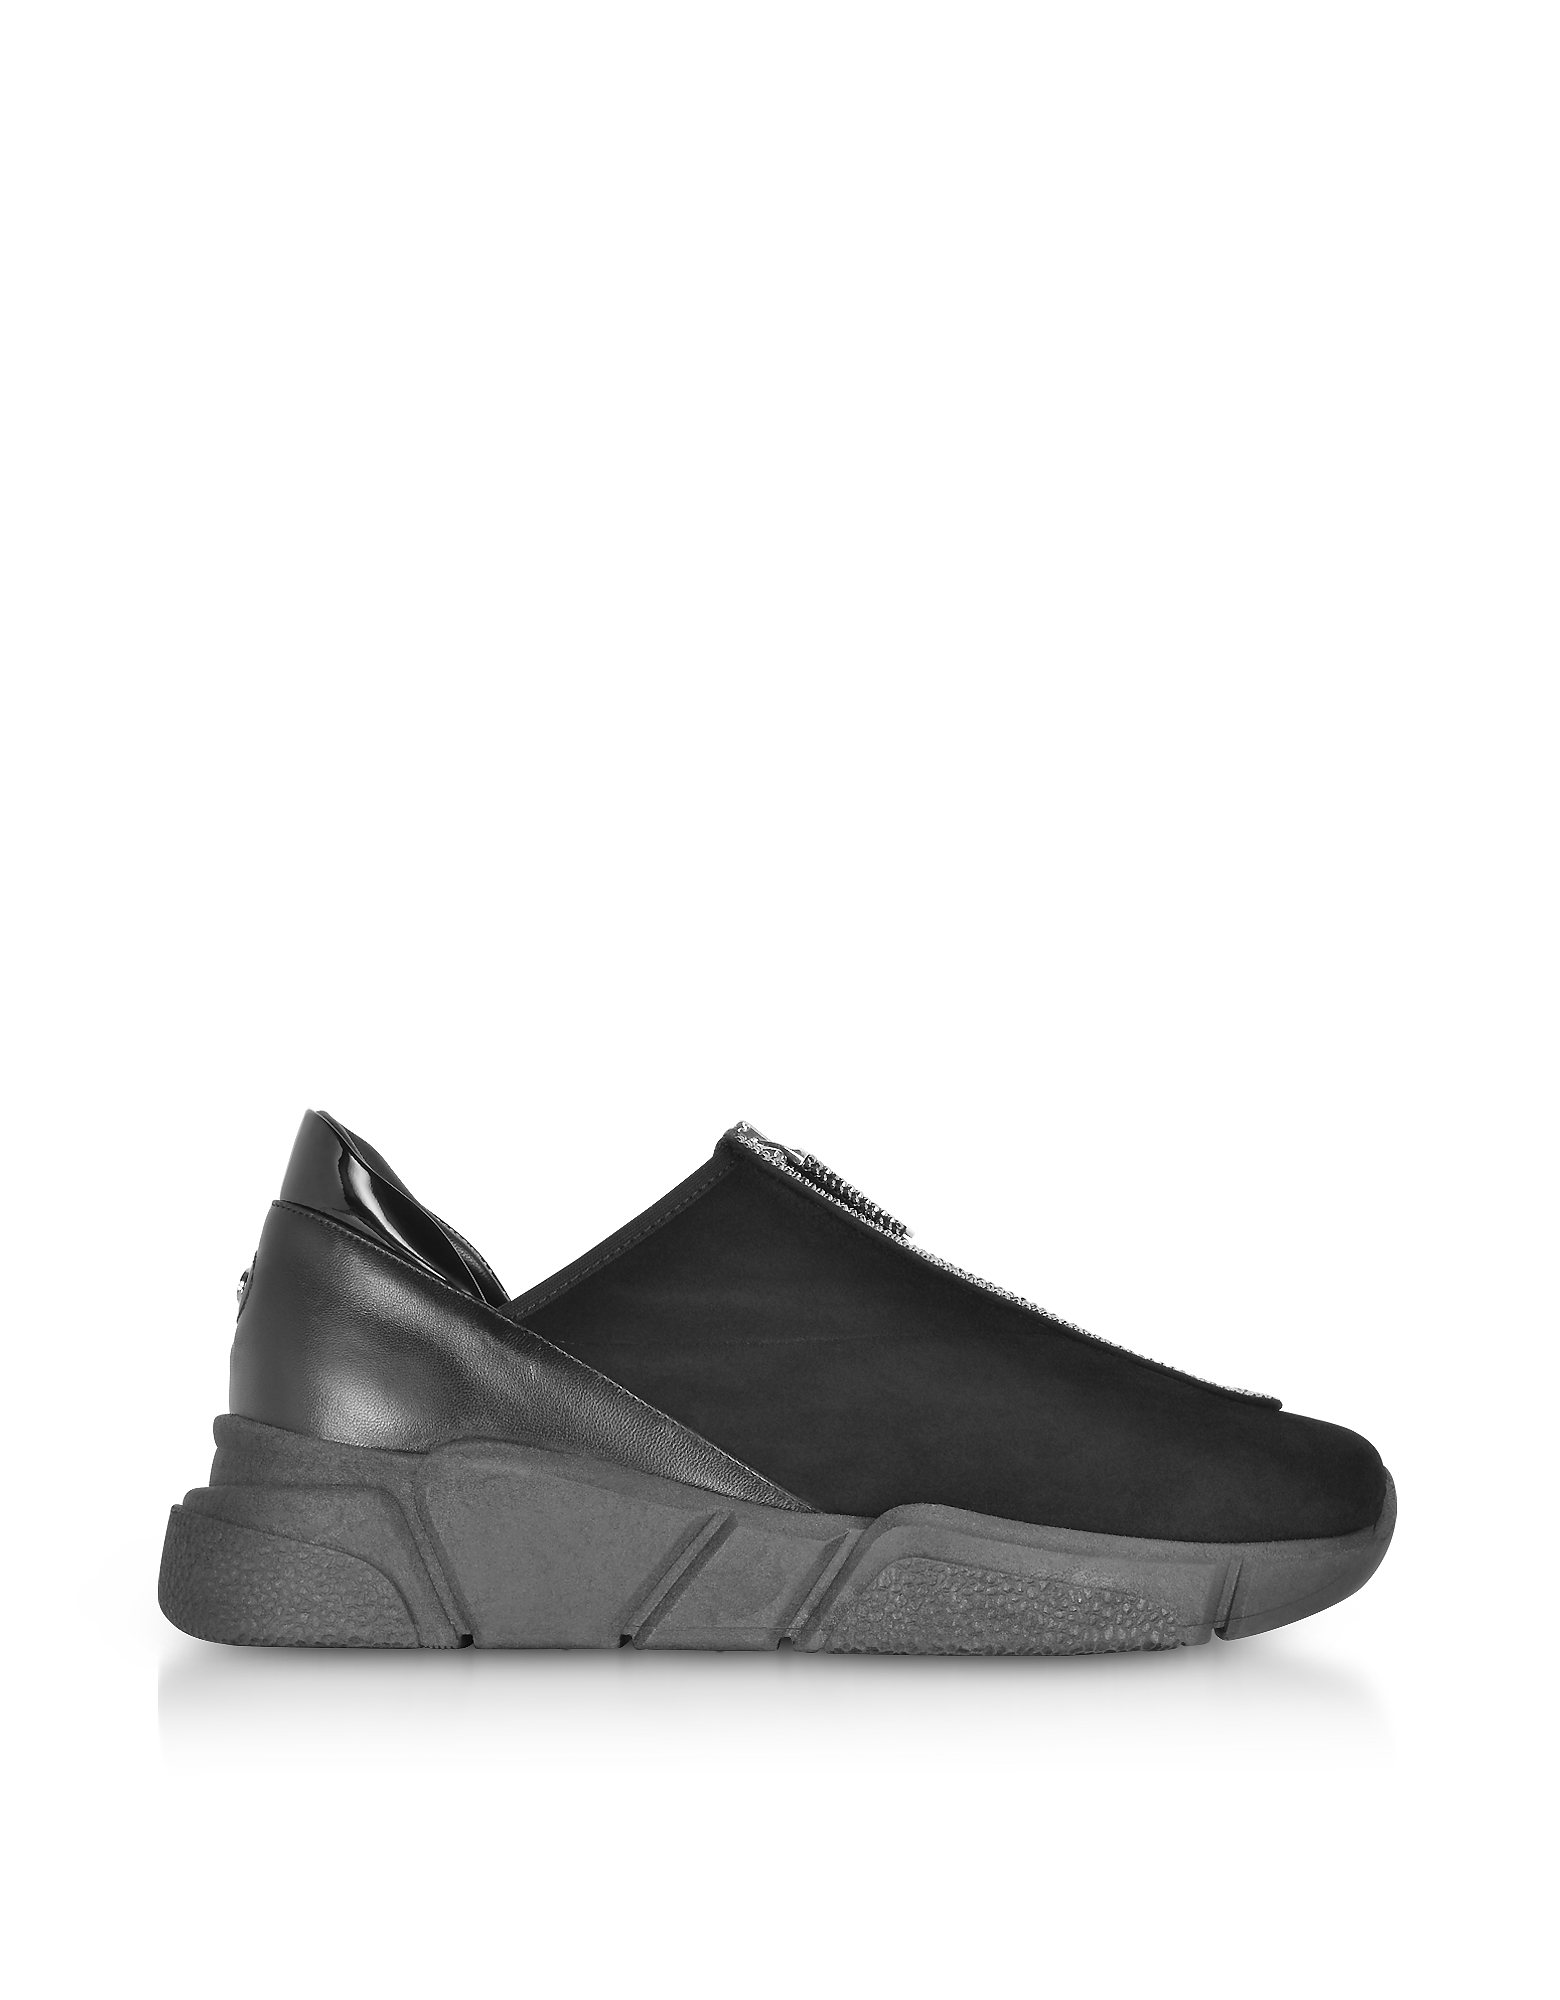 Rodo Shoes, Black Suede Zip Sneakers